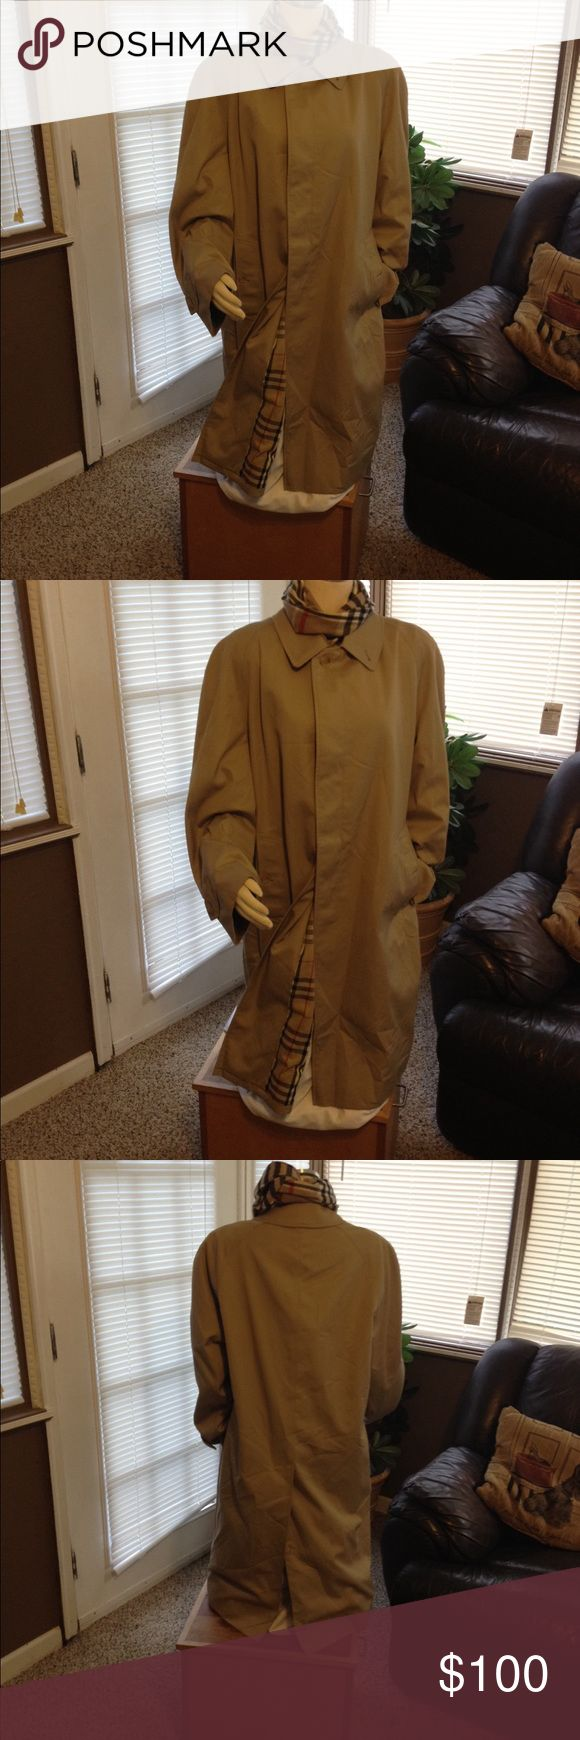 Beautiful Vintage Burberry Trench Grab this beauty  just in time for fall! Beautiful authentic Burberry trench. No tears, holes, or stains. Excellent clean condition. Interior features classic nova check pattern. This style was not made with a belt. Has size tag in left pocket, shown in pic. Size tag says 52 short, or 18 , 2XL . Make me an offer! Burberry Jackets & Coats Trench Coats